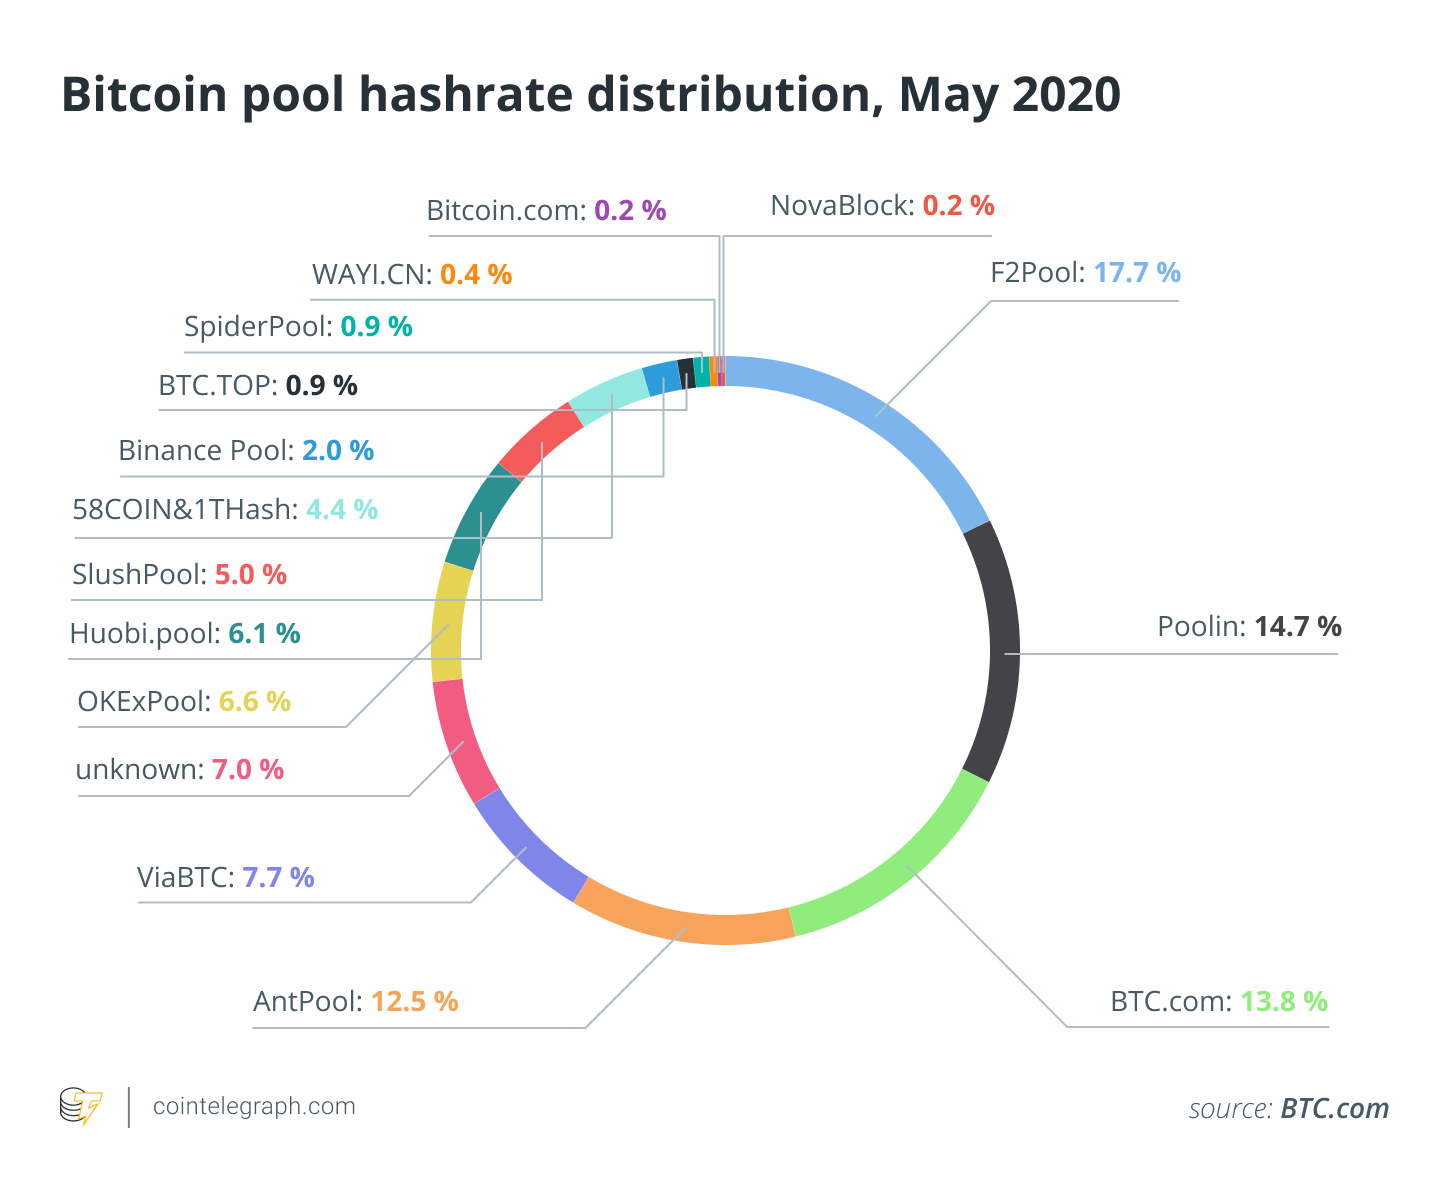 Bitcoin pool hashrate distribution, May 2020